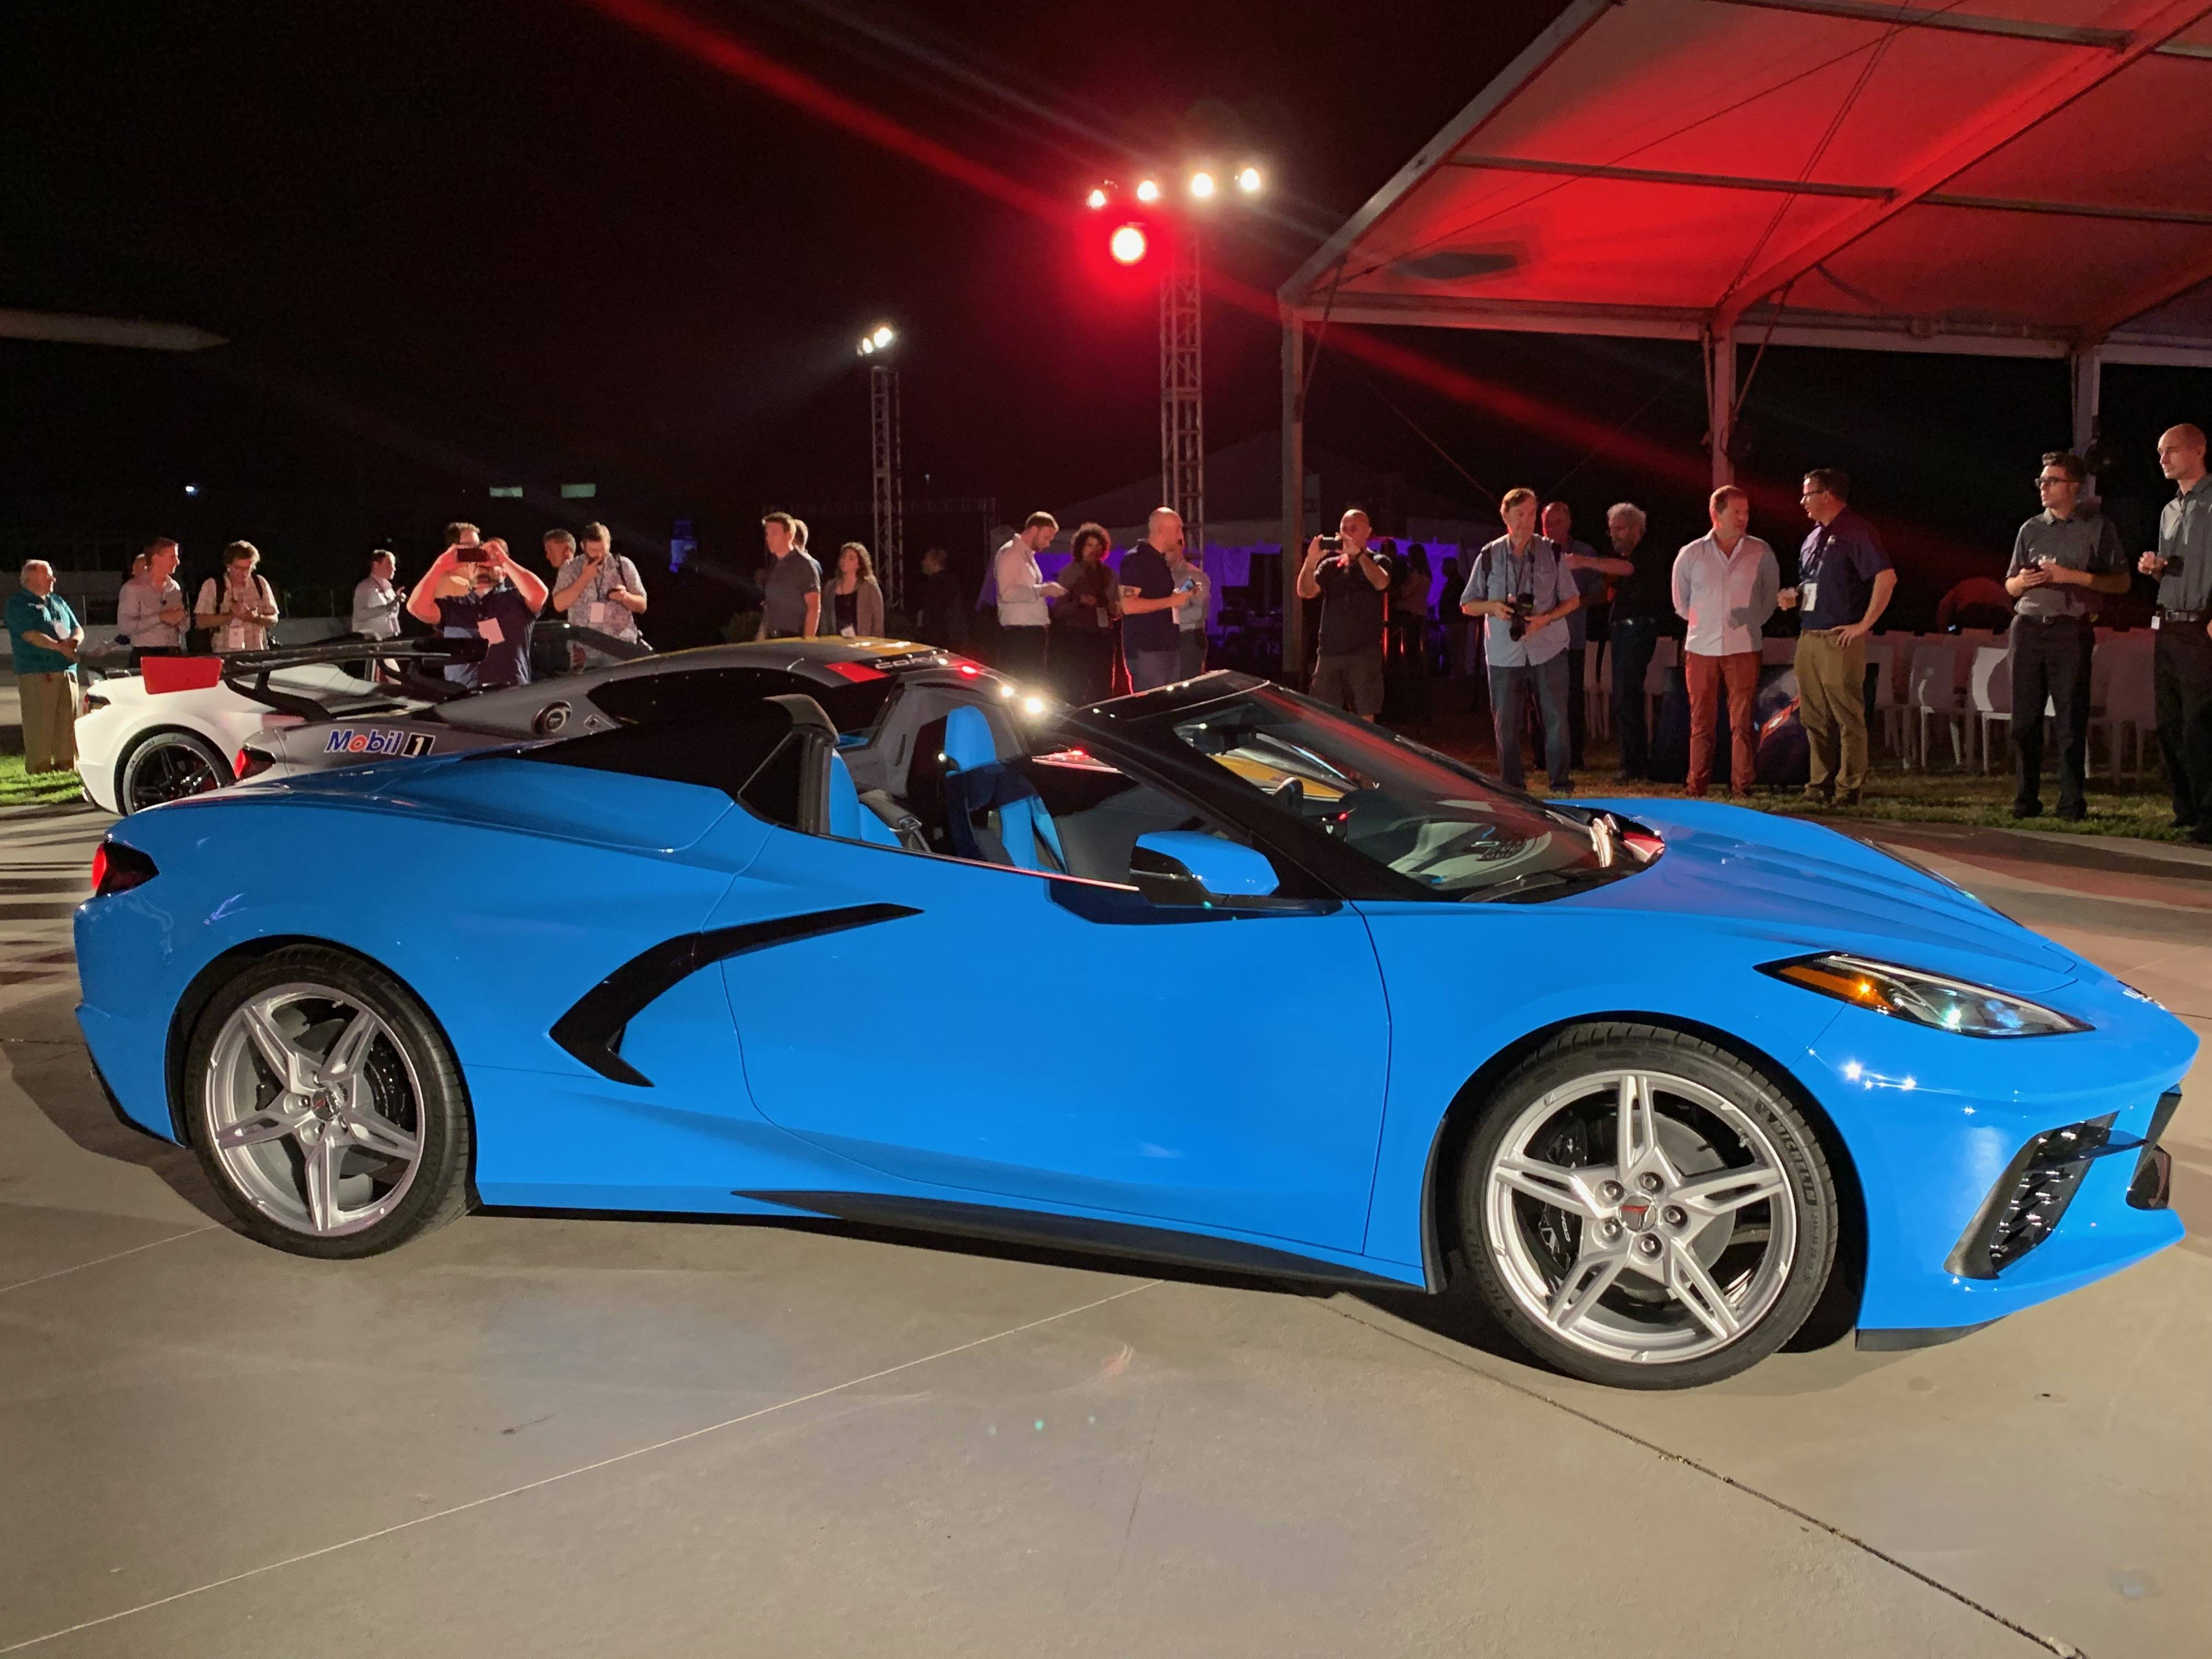 Chevrolet Reveals The Super Ugly Corvette C8 Convertible To The